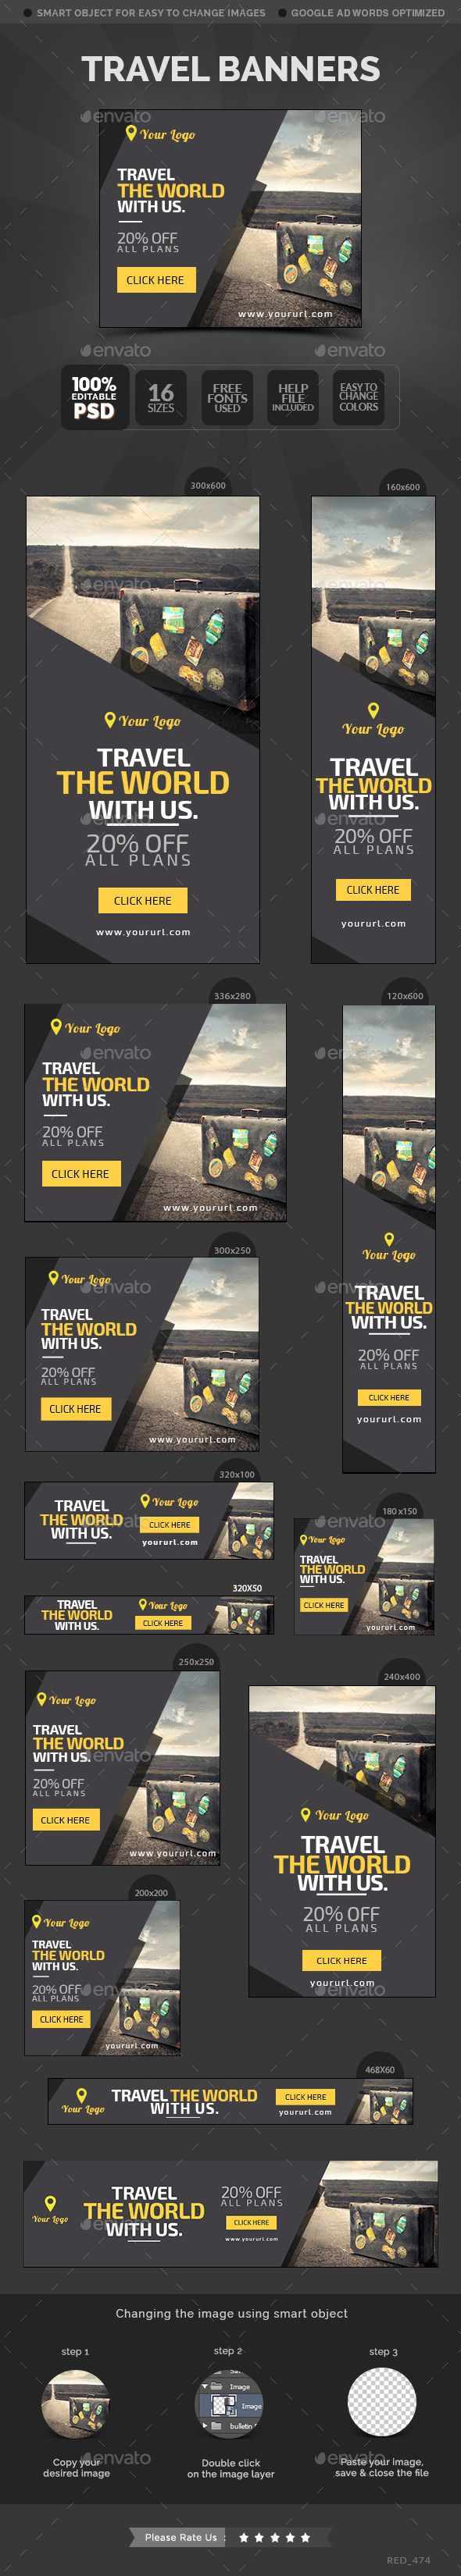 Travel Banners Template #design Download: http://graphicriver.net/item/travel-banners/12418730?ref=ksioks